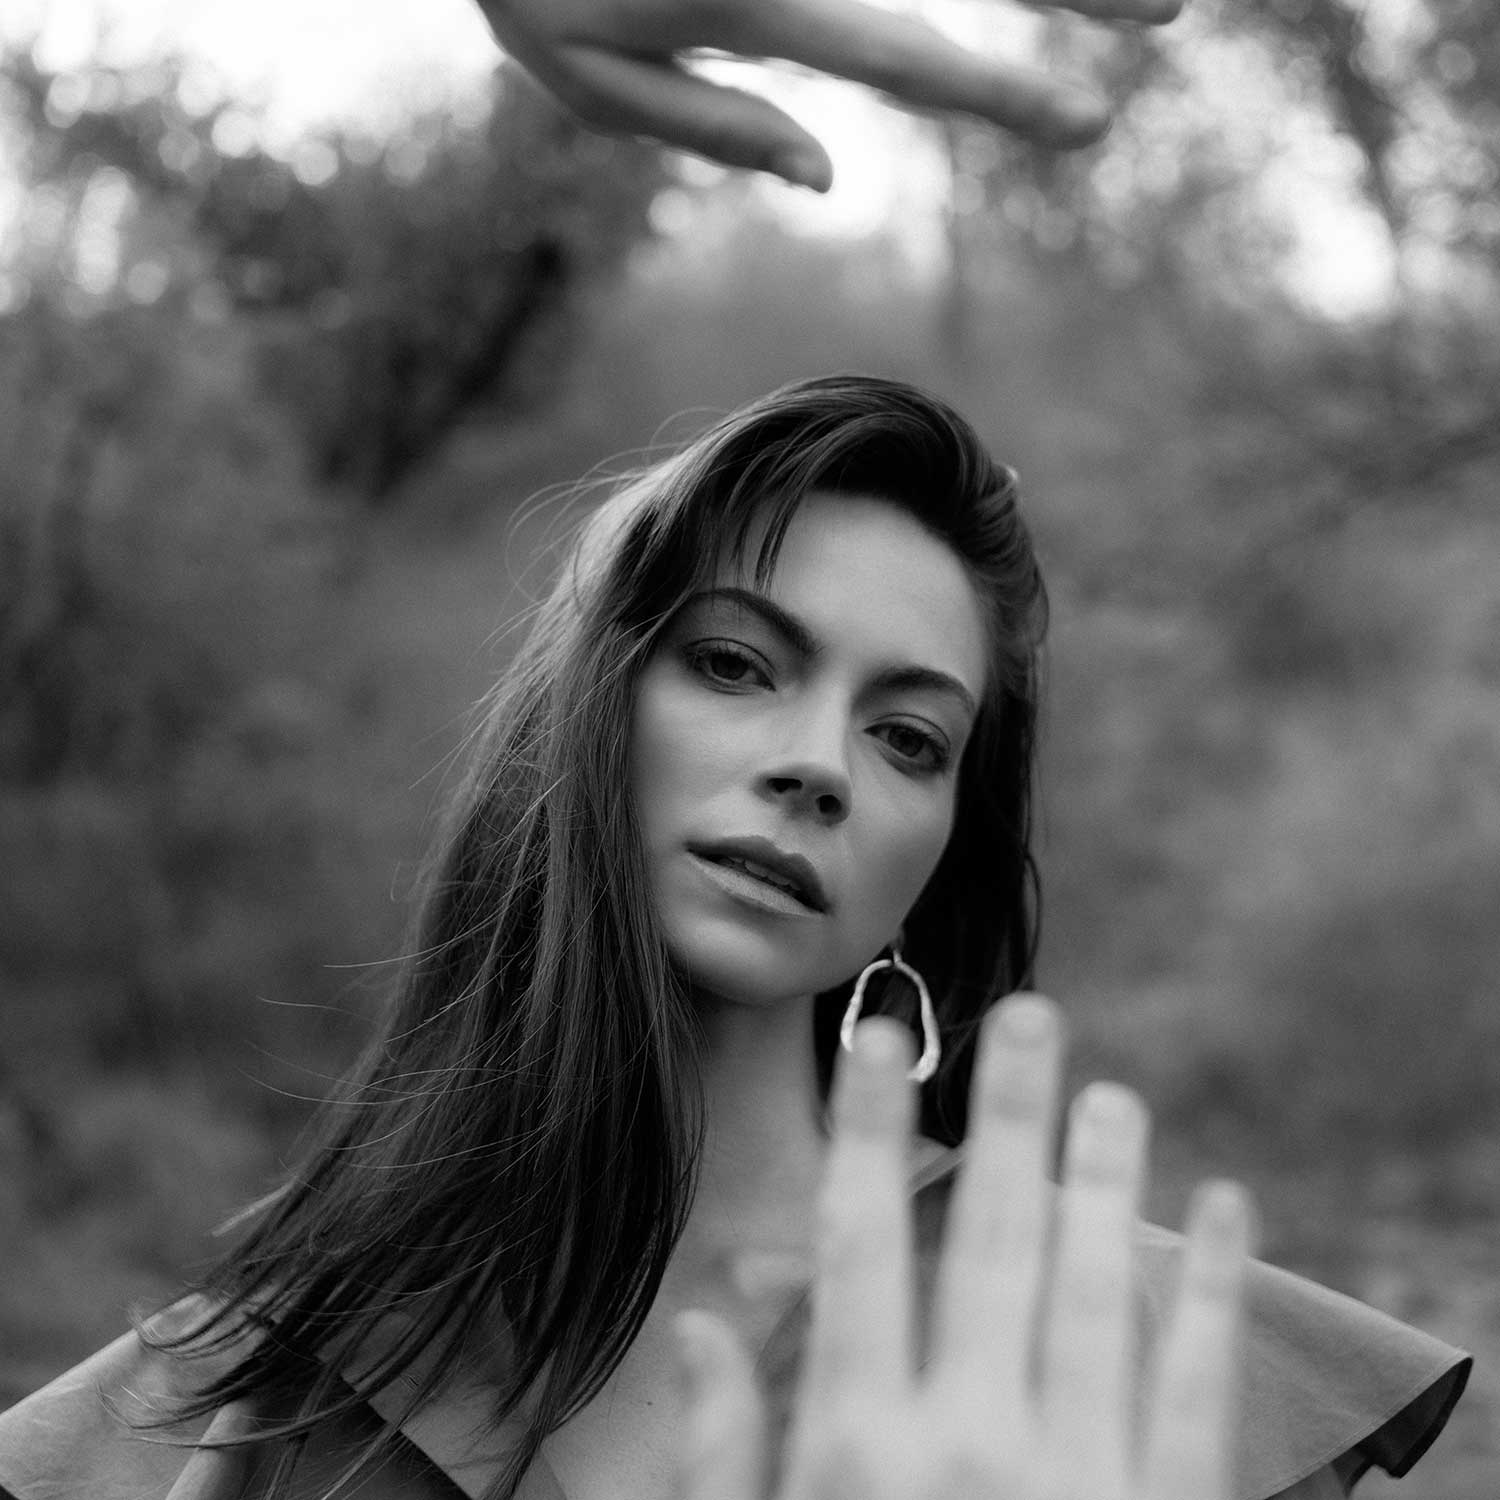 ONE TO WATCH: CAITLIN CARVER - The Huntsville, Alabama-raised actress reflects on reconnecting with her roots, playing Delilah in The Delta Girl, and why she wants to see the South more authentically represented on screen